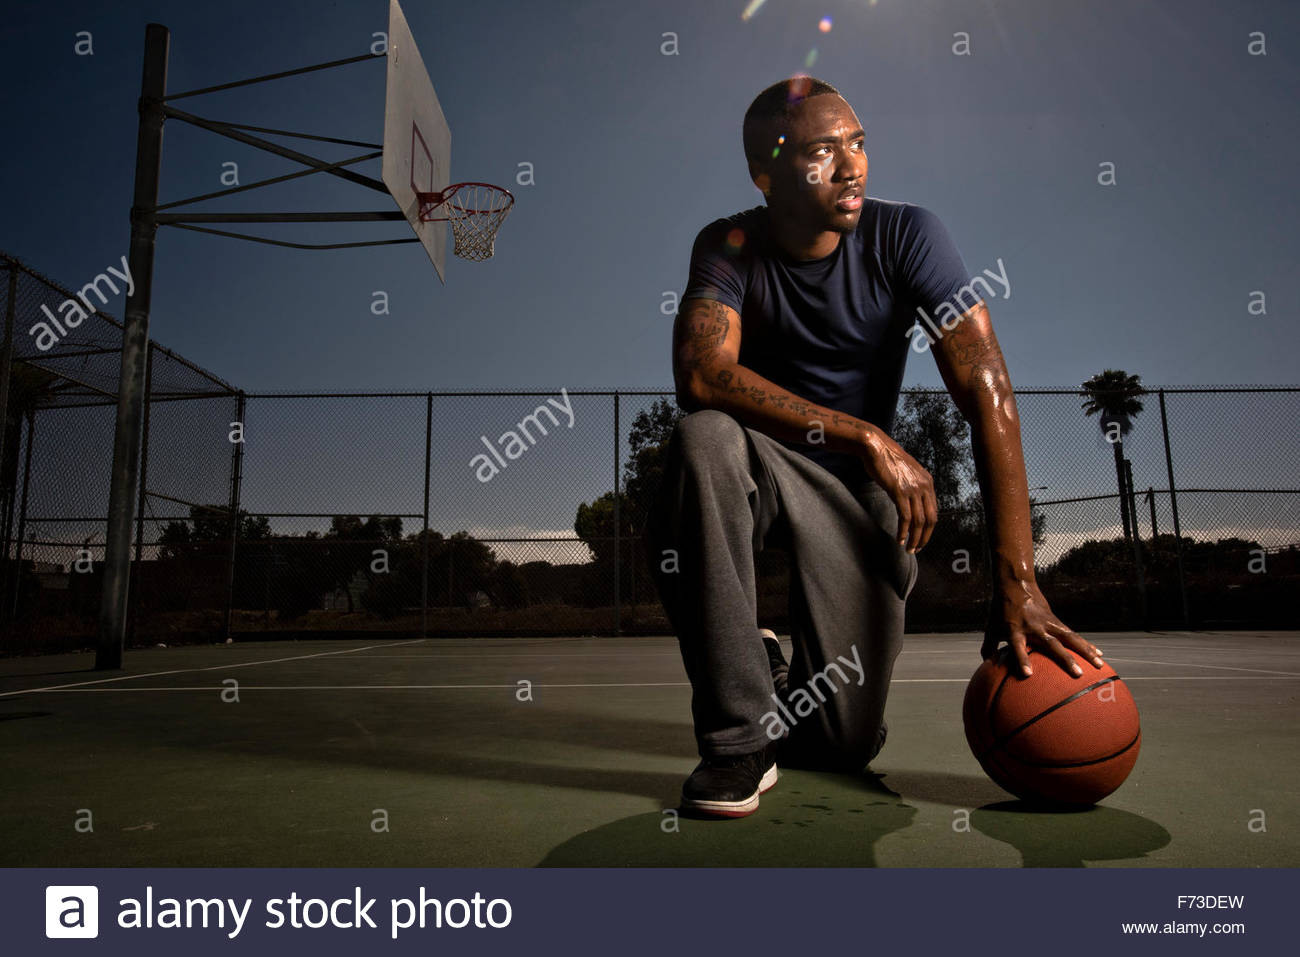 A basketball player player rests on the court after a game. Stock Photo